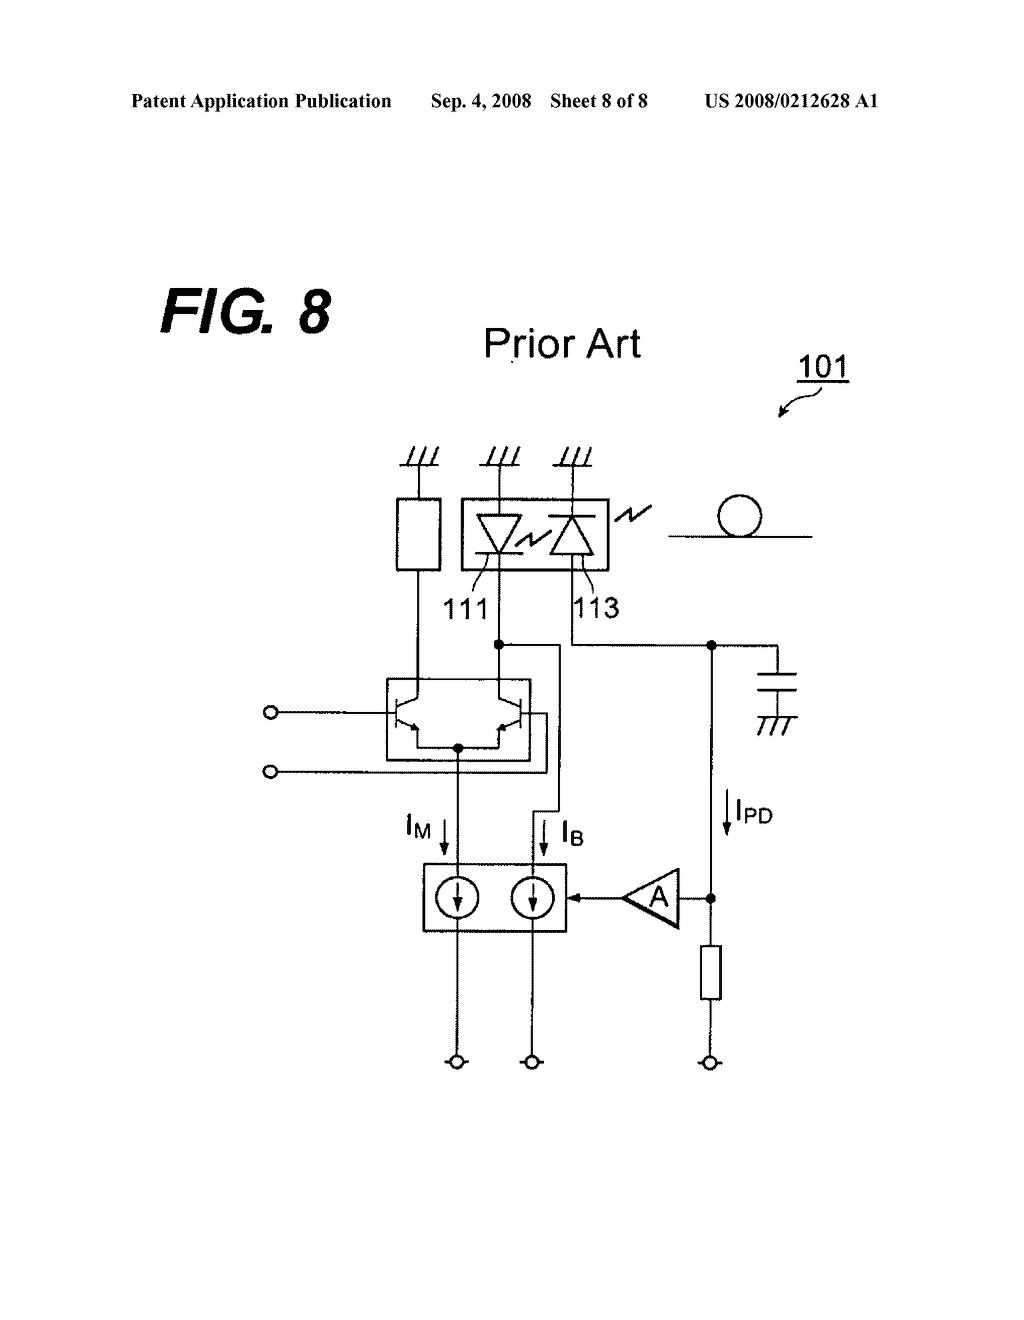 Fine Power Circuit And Control Picture Collection Motor Speed Using Lm3524 Auto To Maintain Extinction Ratio Of Optical